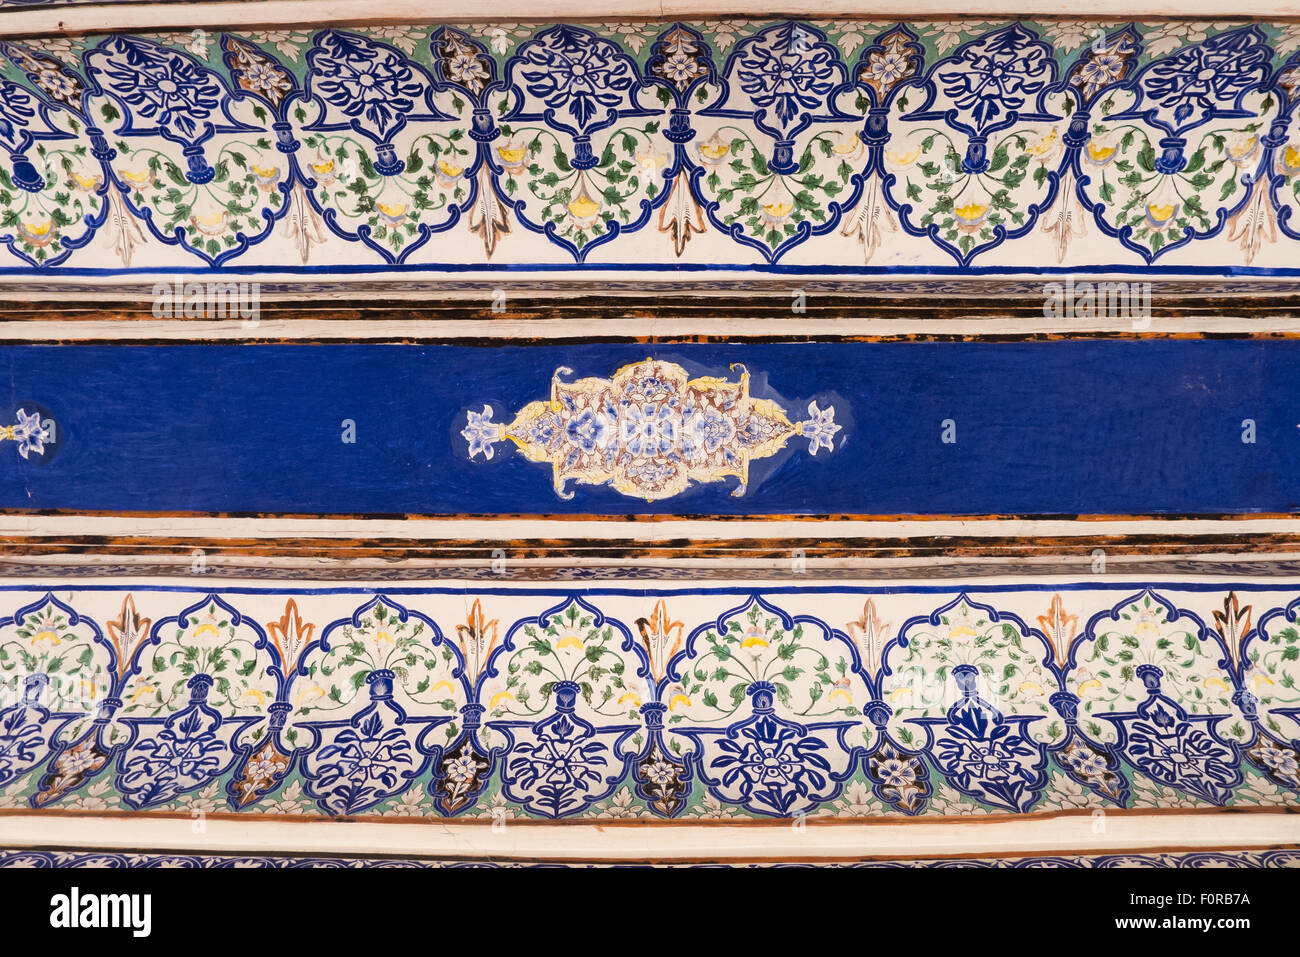 Jodhpur, India. Mehrangarh sandstone hill fort of the Marwar rulers. Blue painted detail. - Stock Image